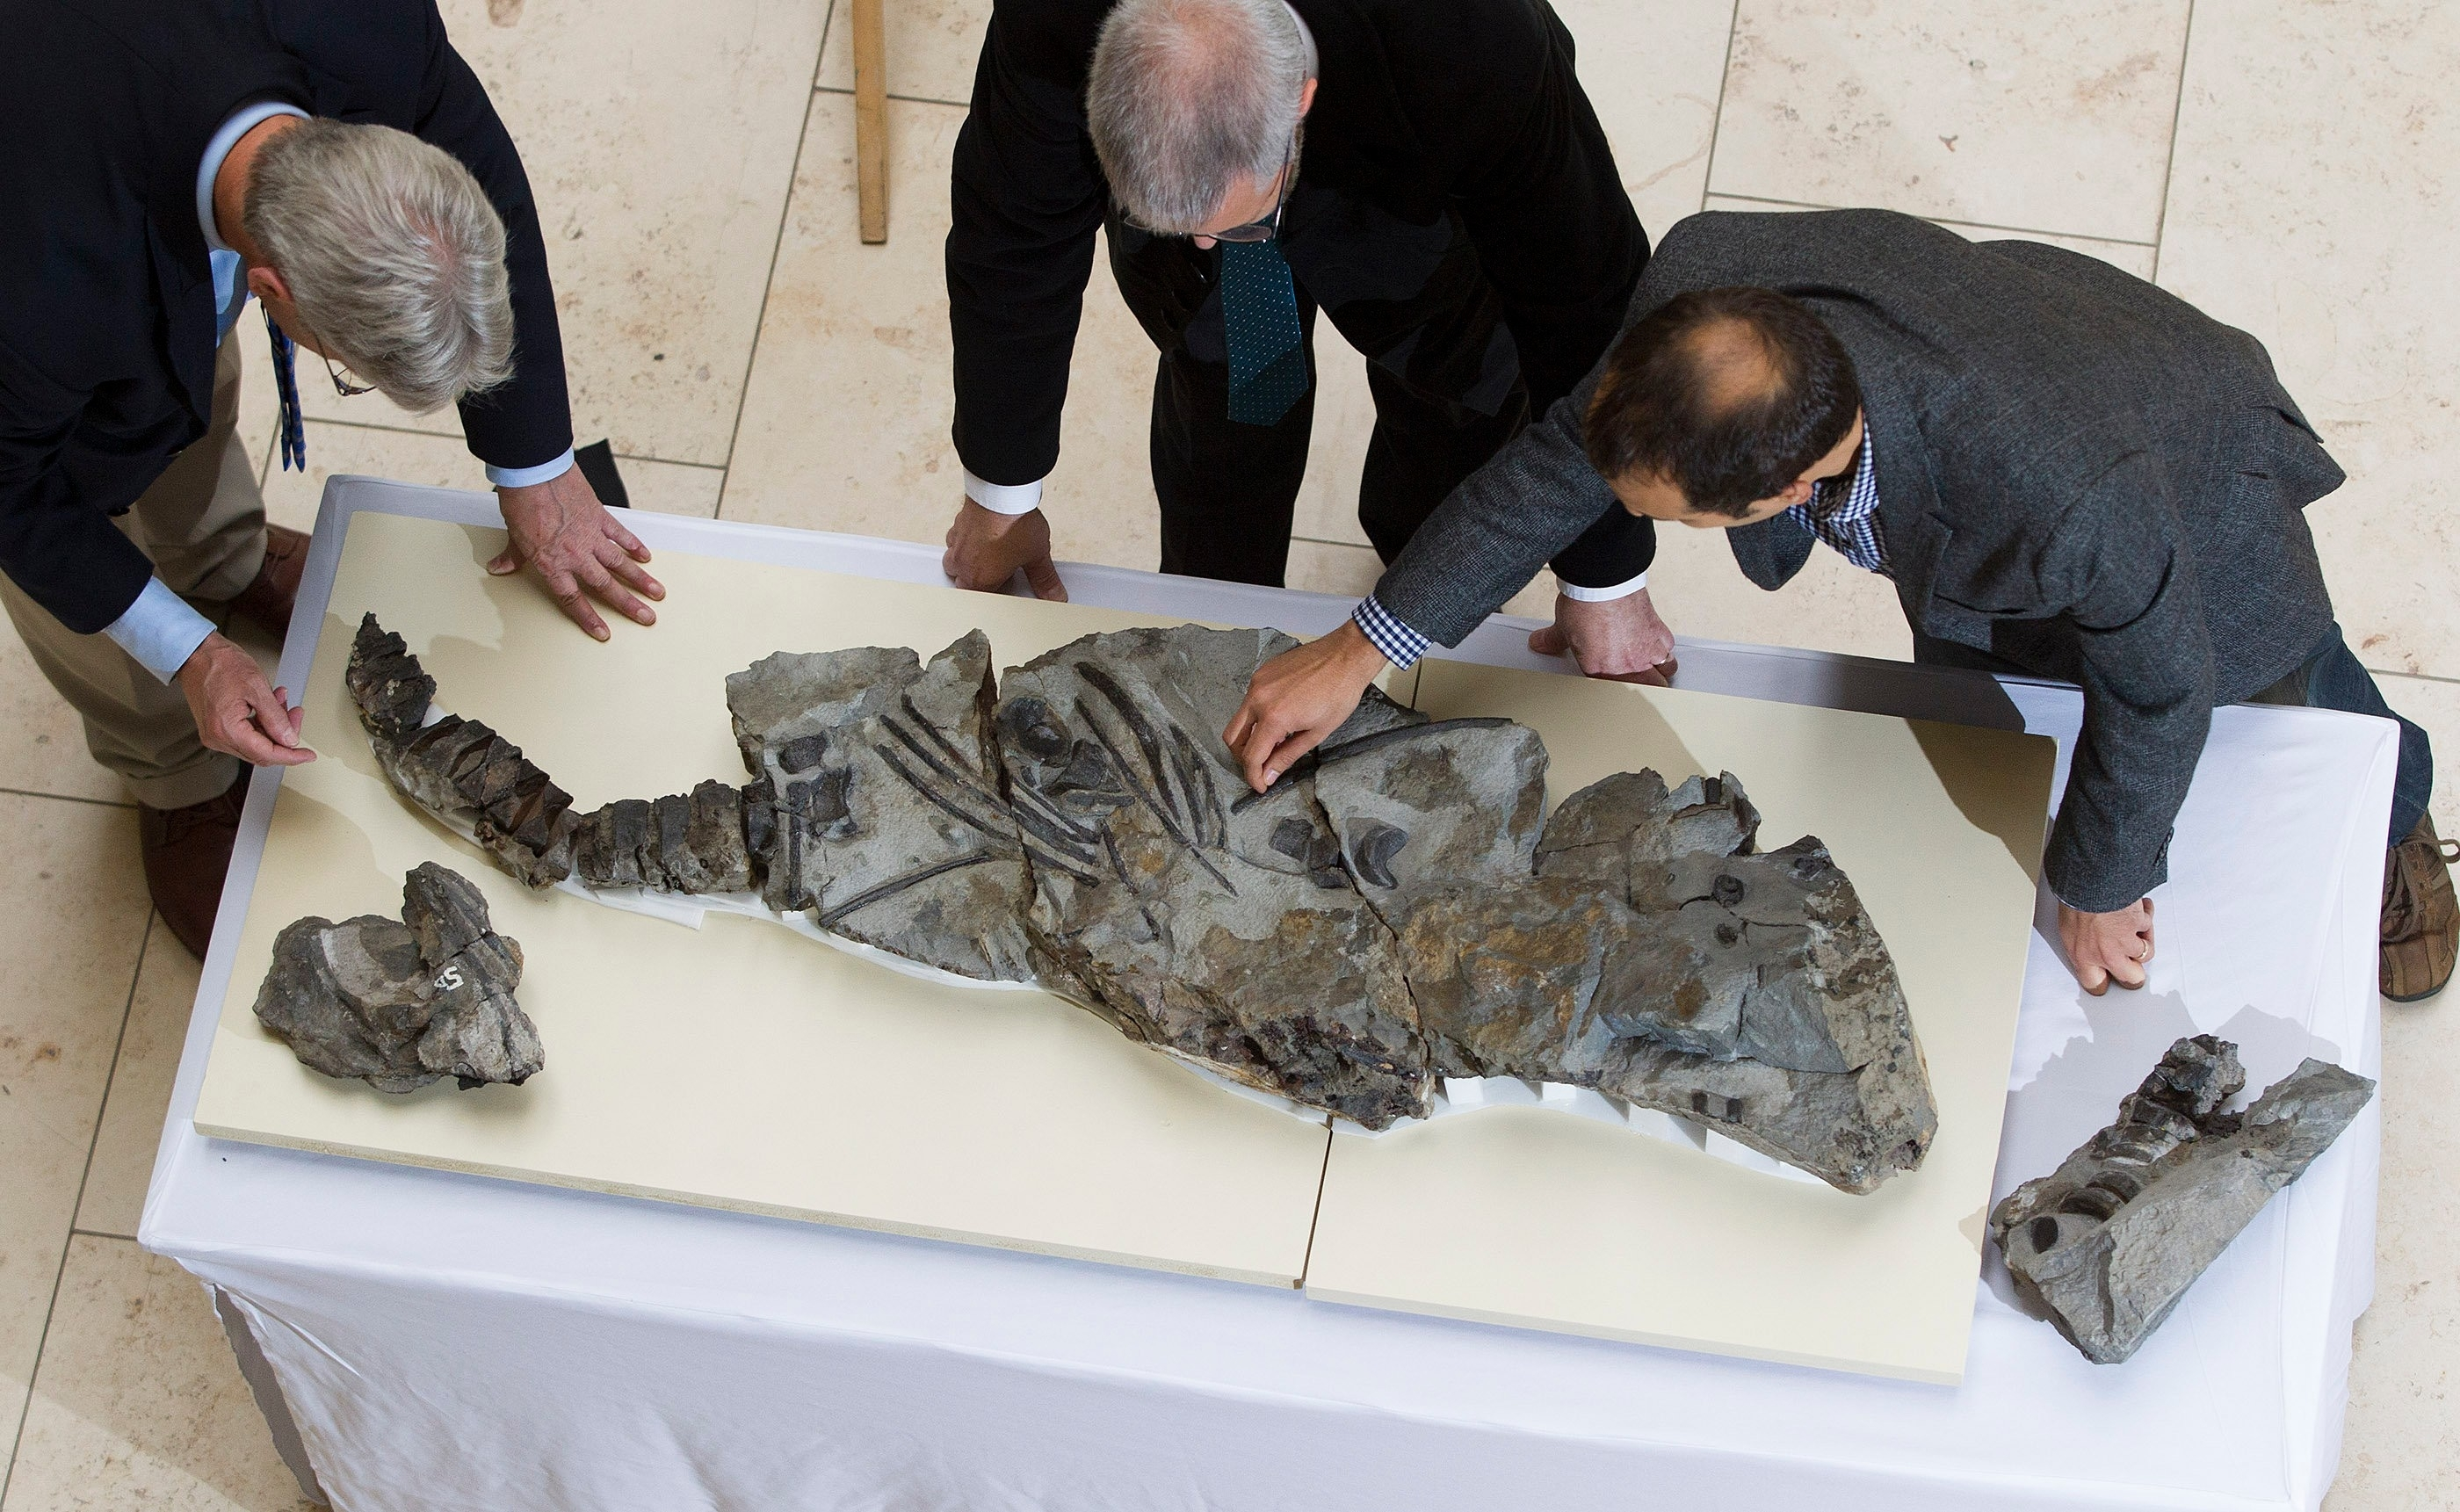 The fossil of a fierce predator that prowled the oceans 170 million years ago is unveiled by scientists for the first time at the National Museum of Scotland. The fossilised skeleton of the dolphin-like animal – named the Storr Lochs Monster – was found on the Isle of Skye in 1966 by Norrie Gillies.